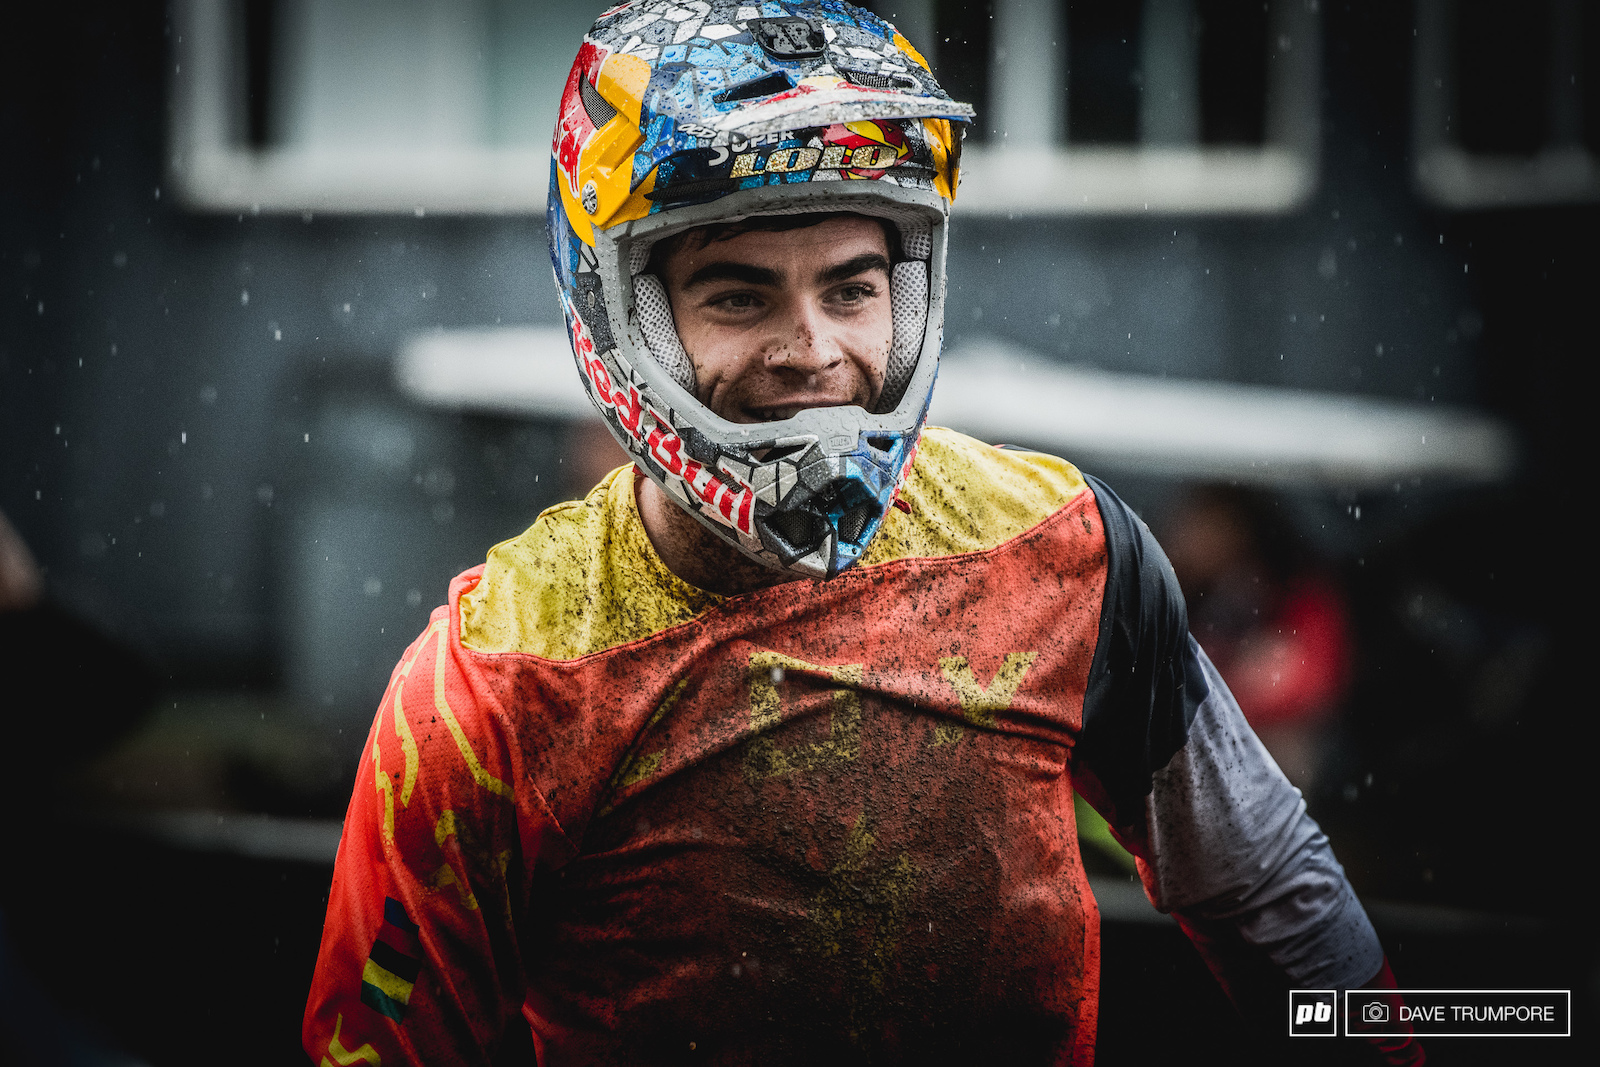 What a ride for Loic Bruni to take 4th in the worst of conditions.